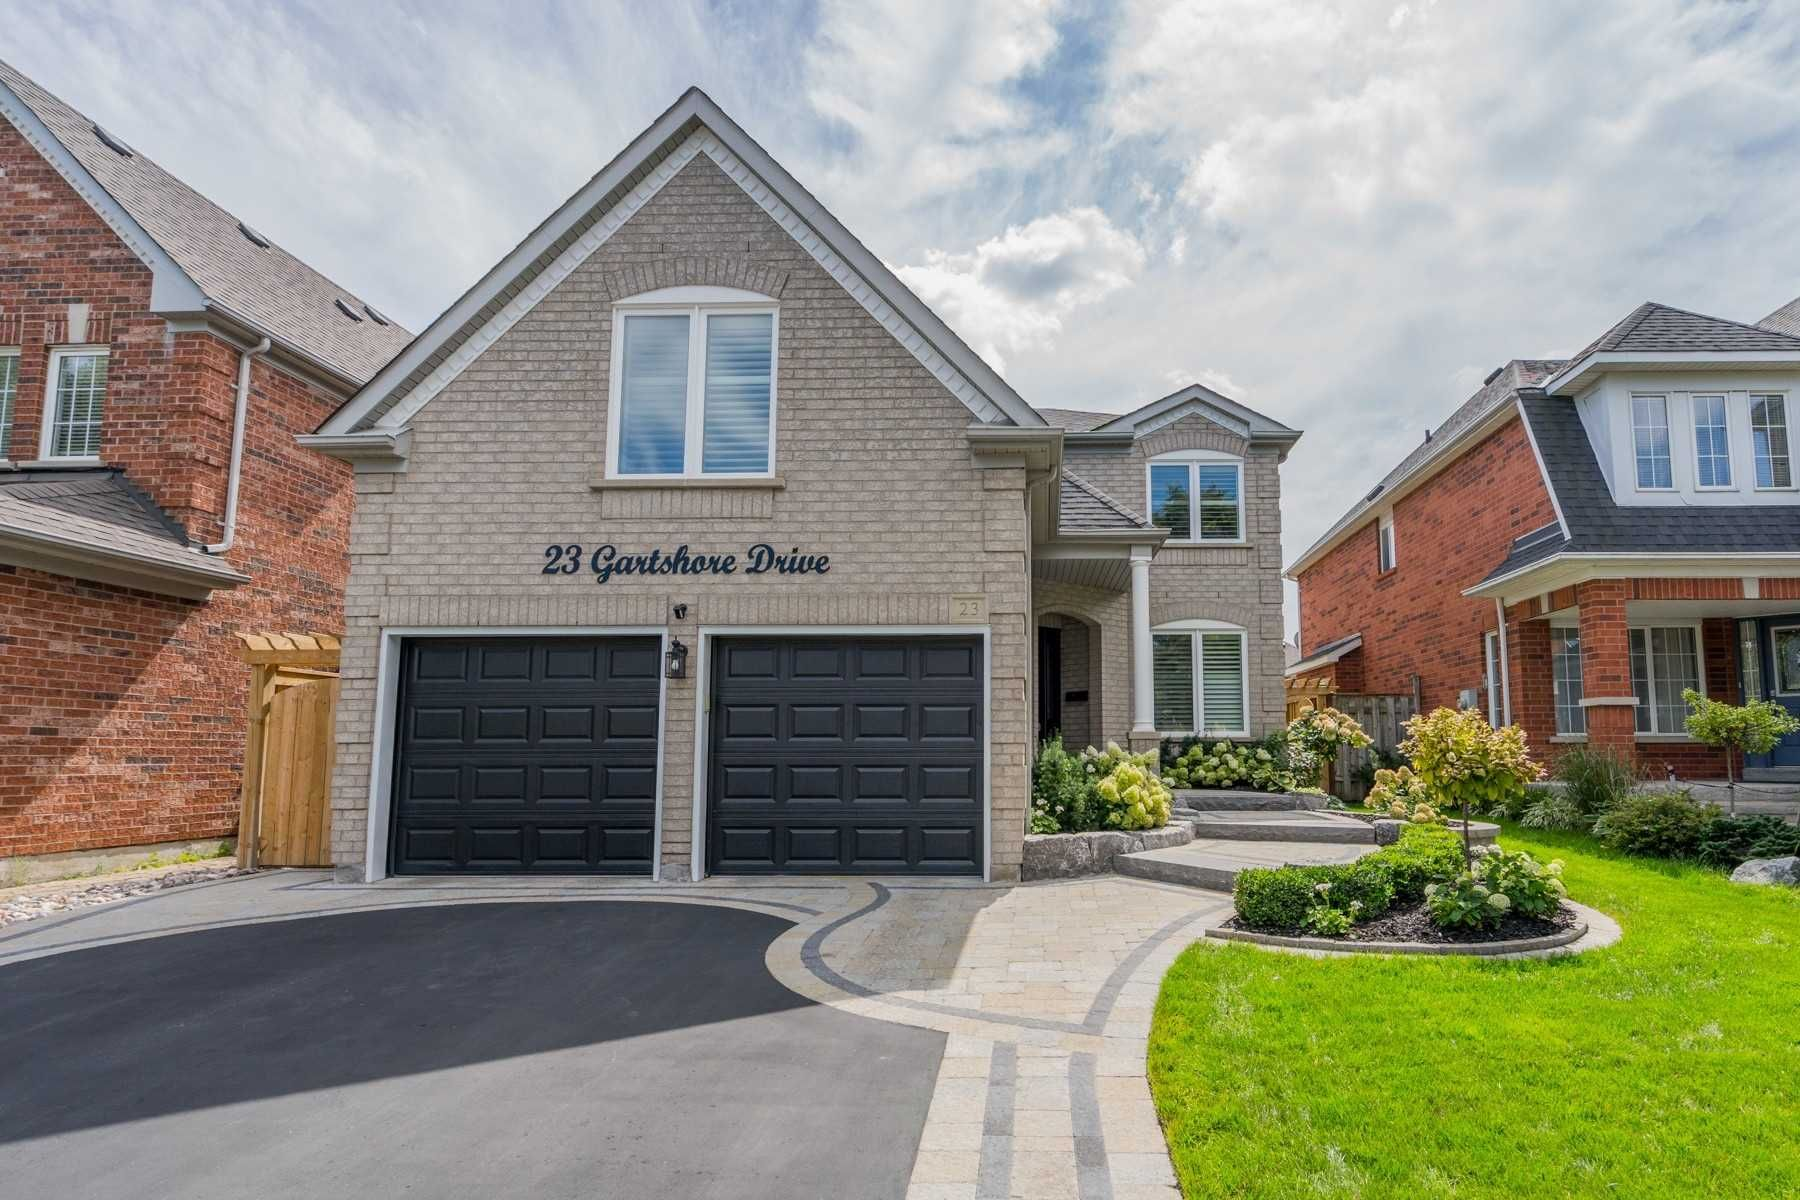 Main Photo: 23 Gartshore Drive in Whitby: Williamsburg House (2-Storey) for sale : MLS®# E5378917